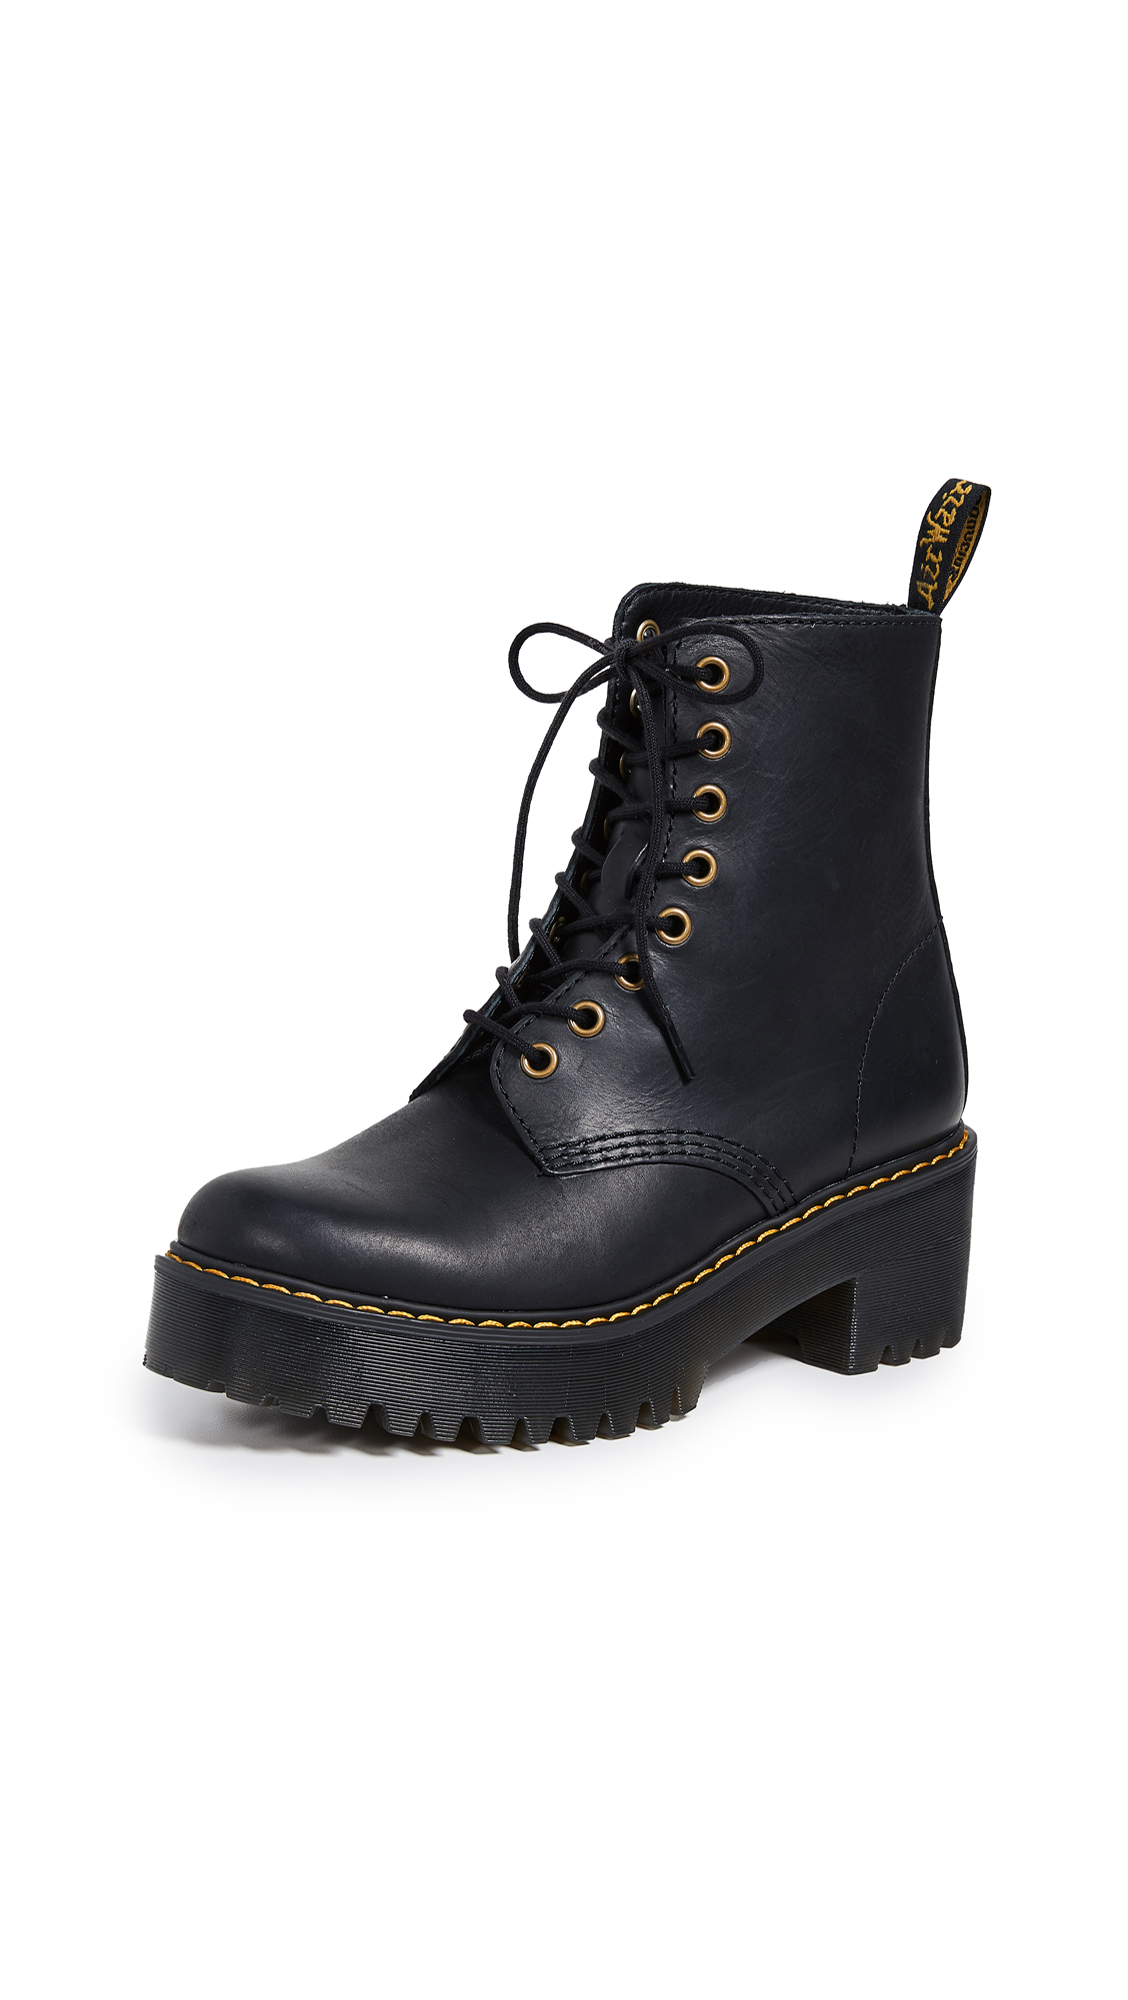 Dr. Martens Shriver 8 Eye Boots - Black